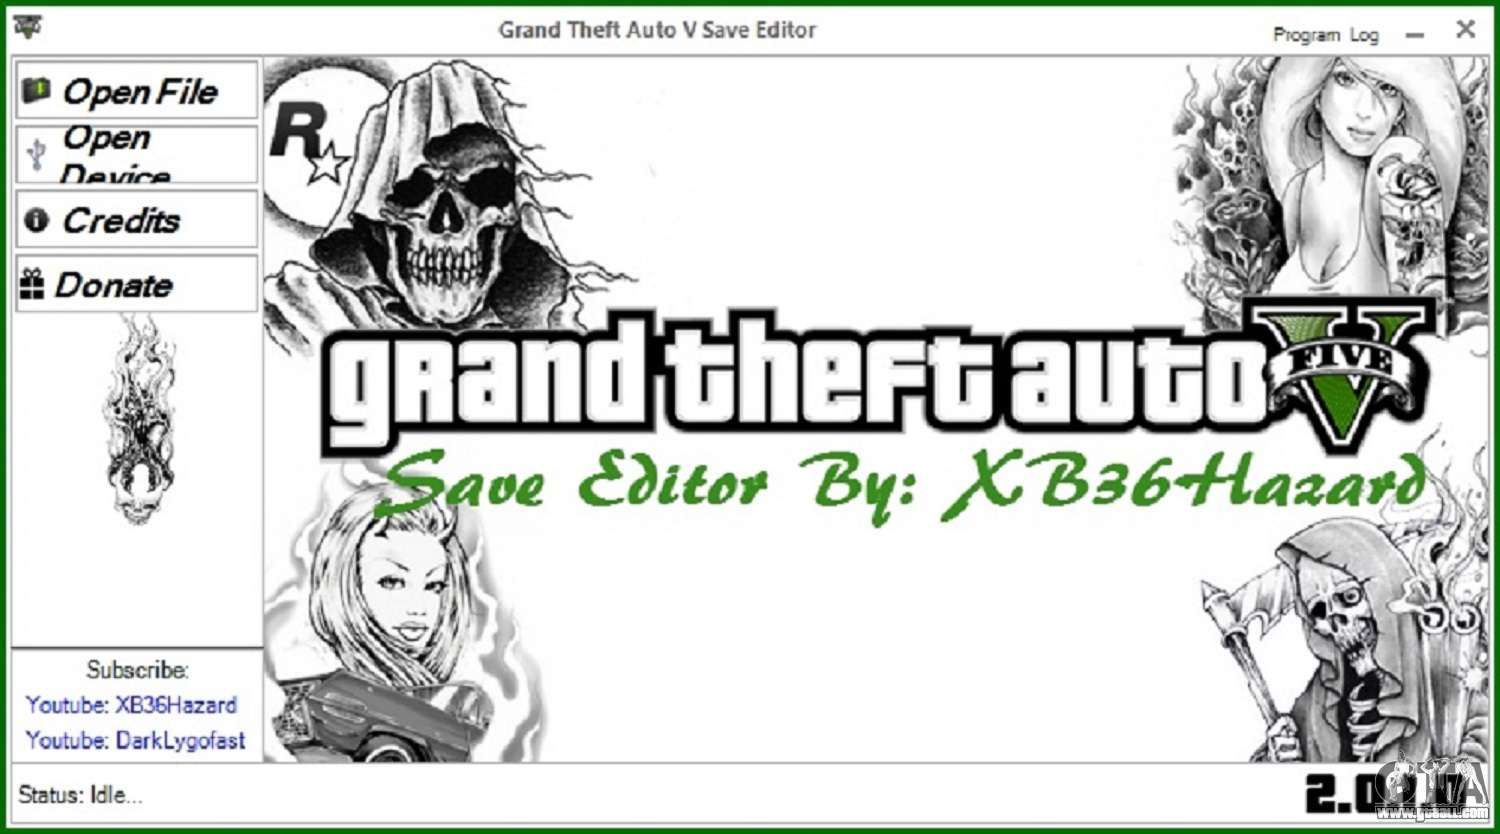 Grand Theft Auto V Save Editor V 2 0 1 0 For Gta 5